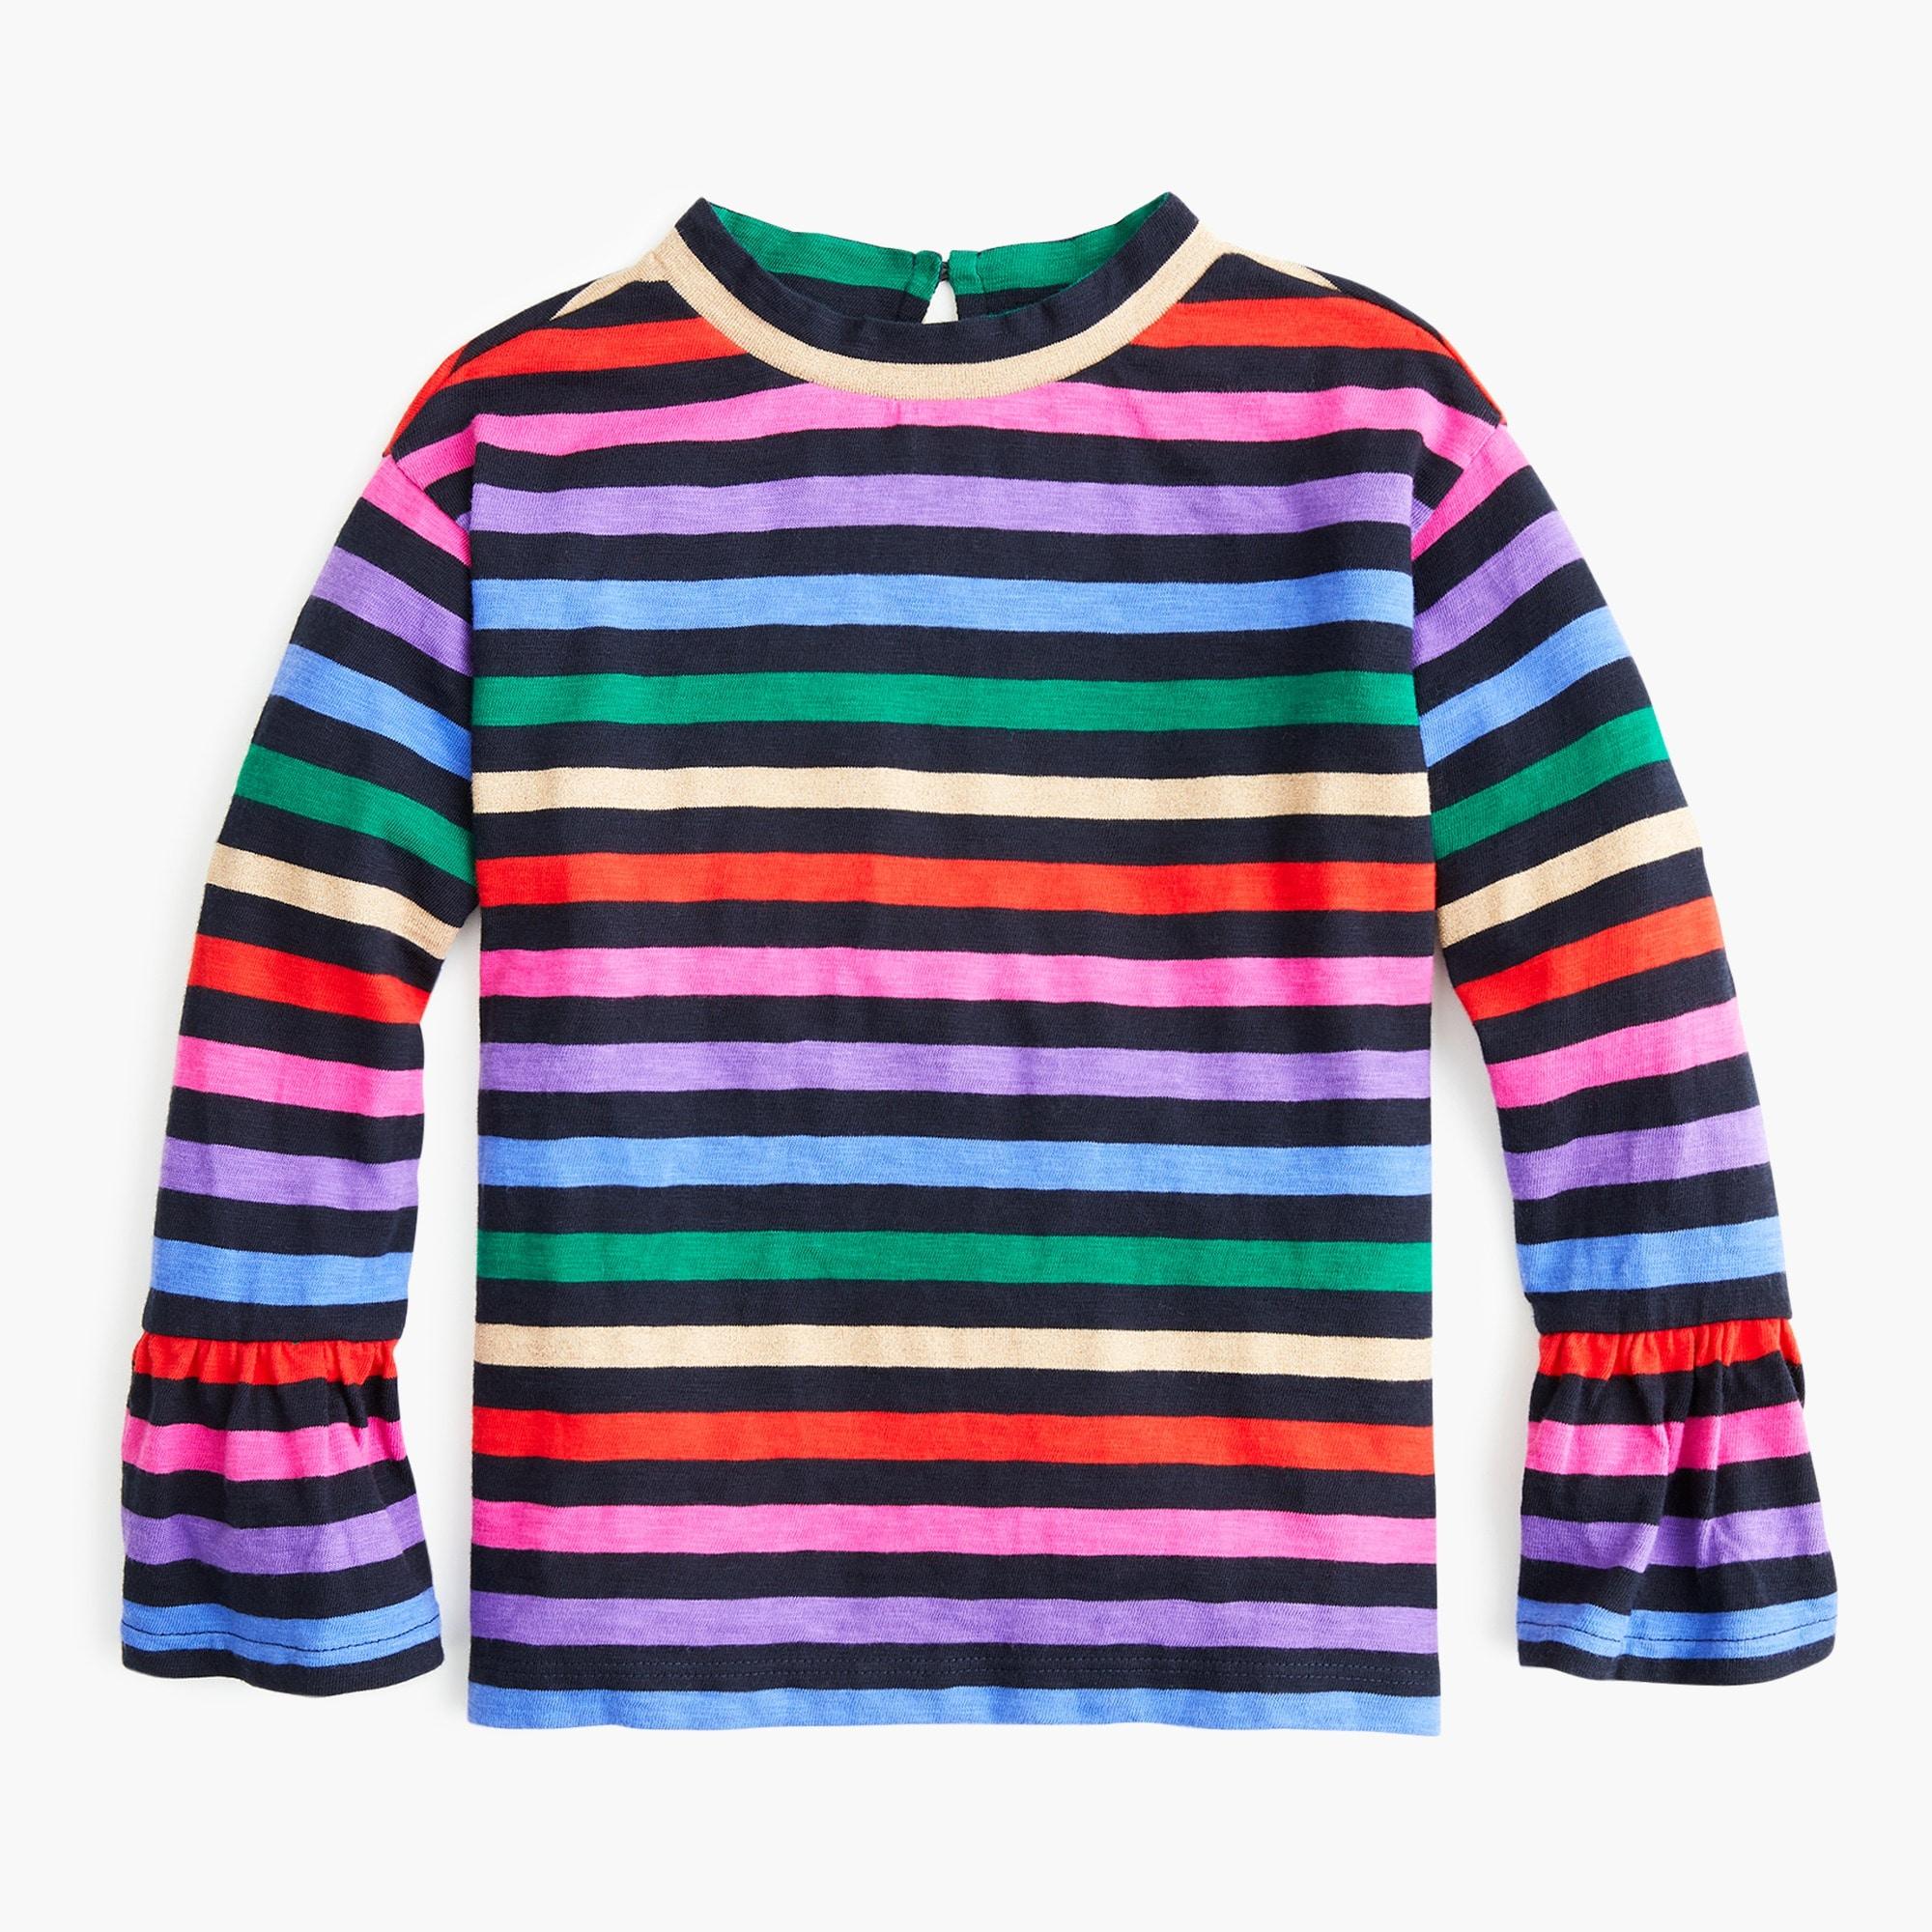 girls Girls' rainbow-striped top with flare sleeves